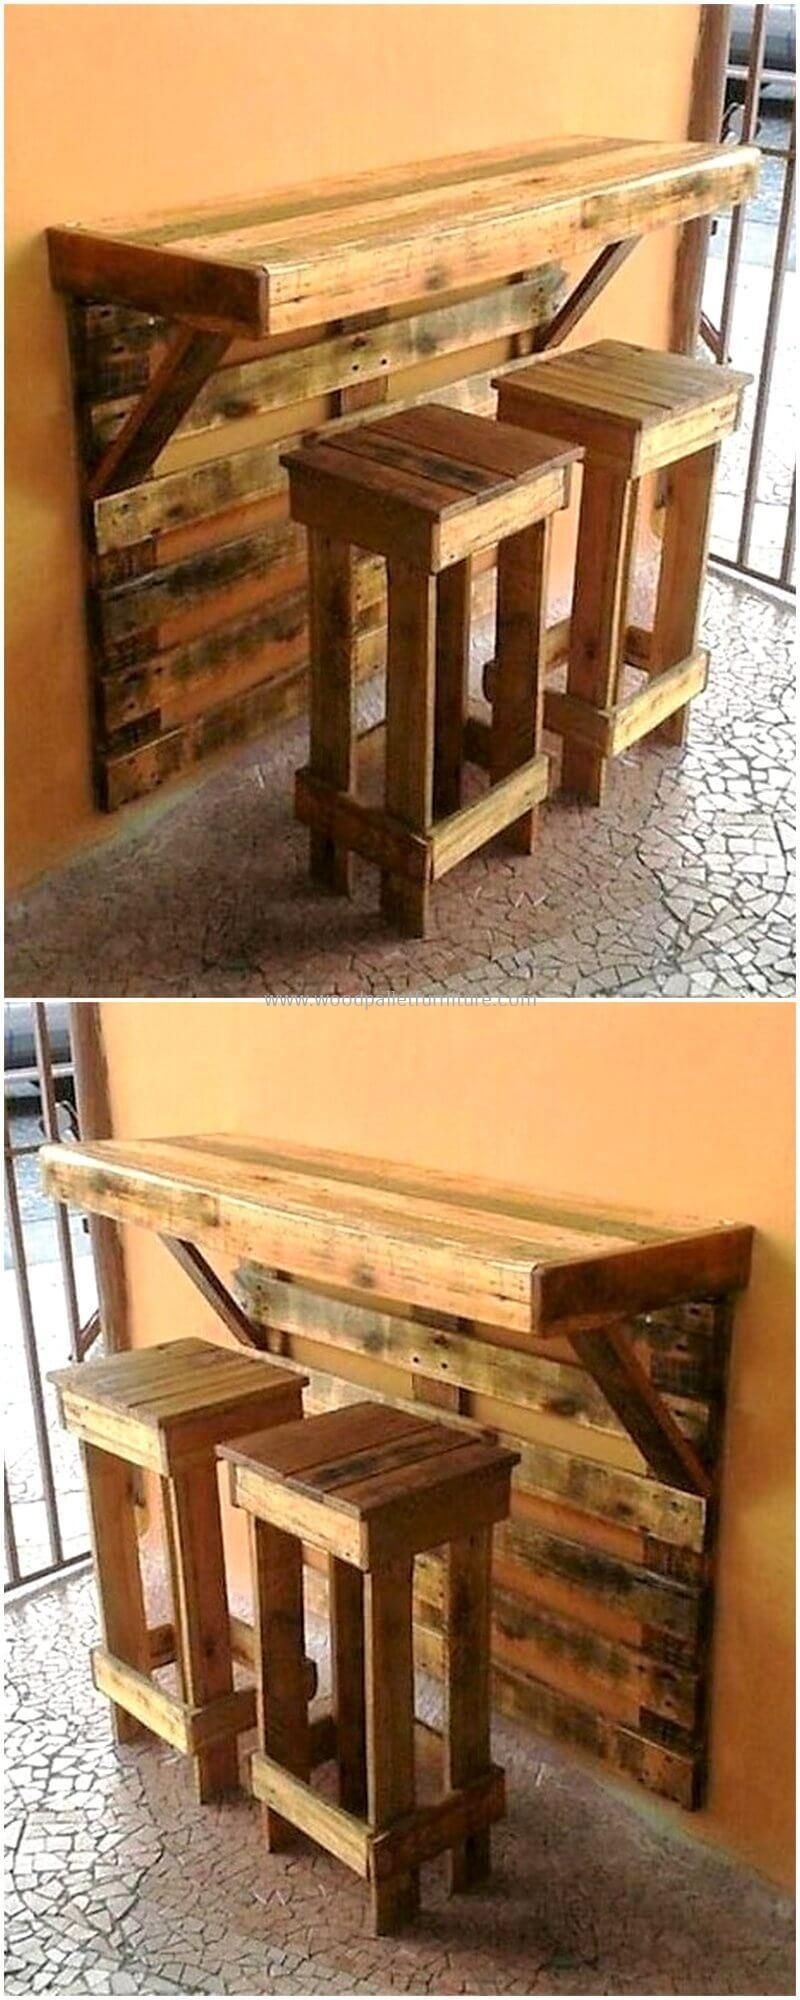 Ingenious Ideas to Reuse Shipping Wood Pallet | Pallet bench, Wood ...